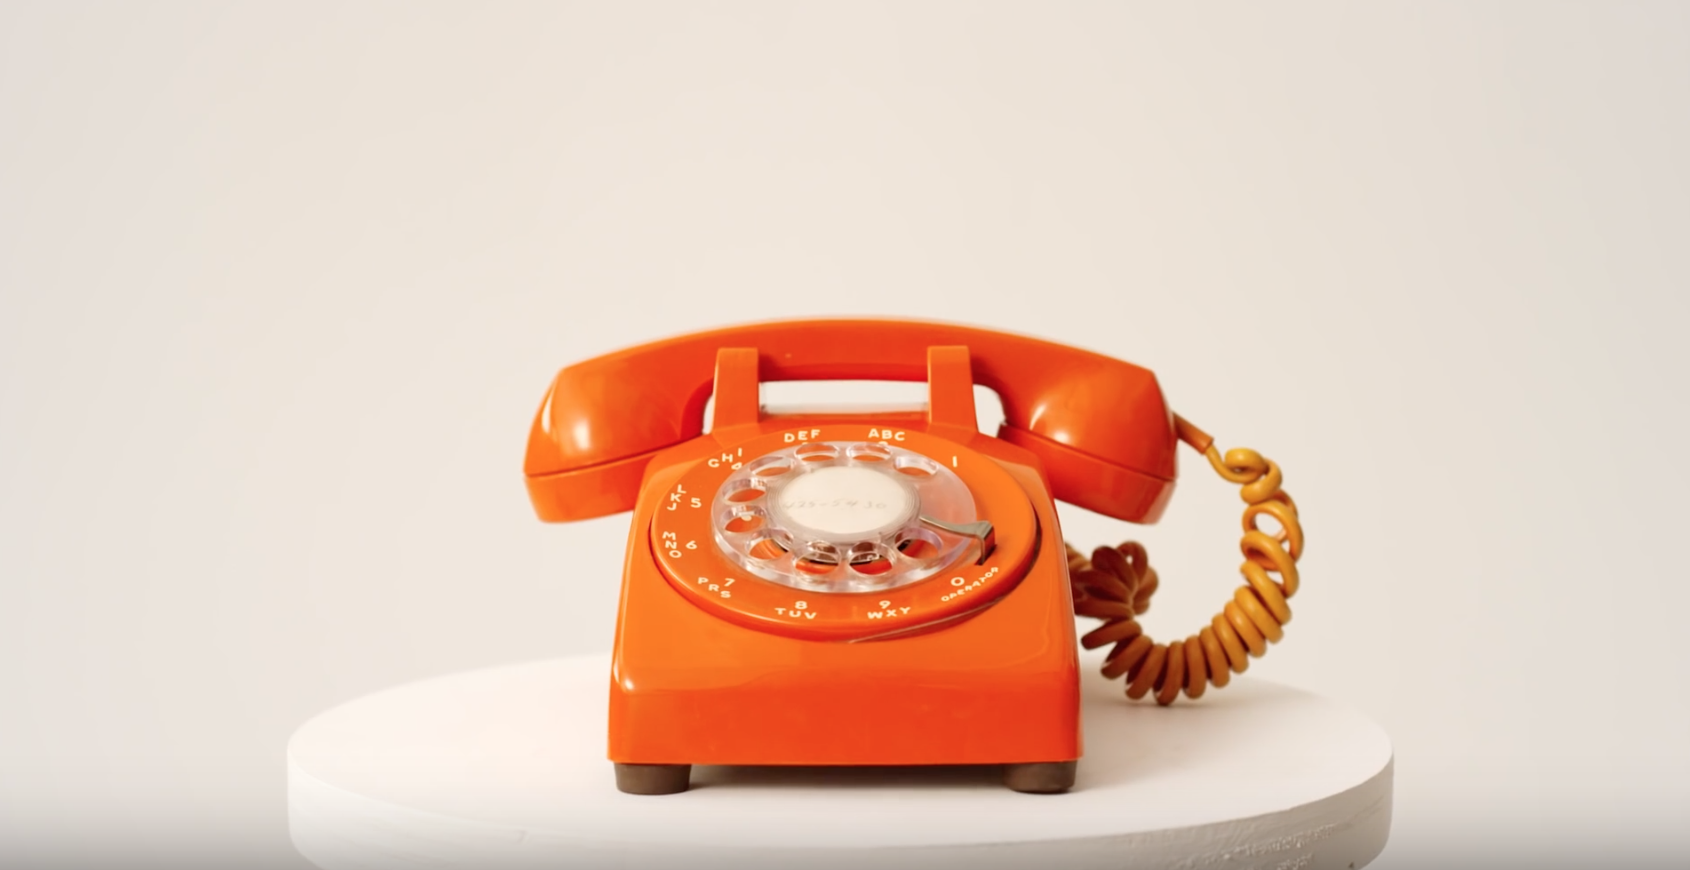 I'm OBSESSED with this telephone, and the stills from the video. Great art direction and styling.